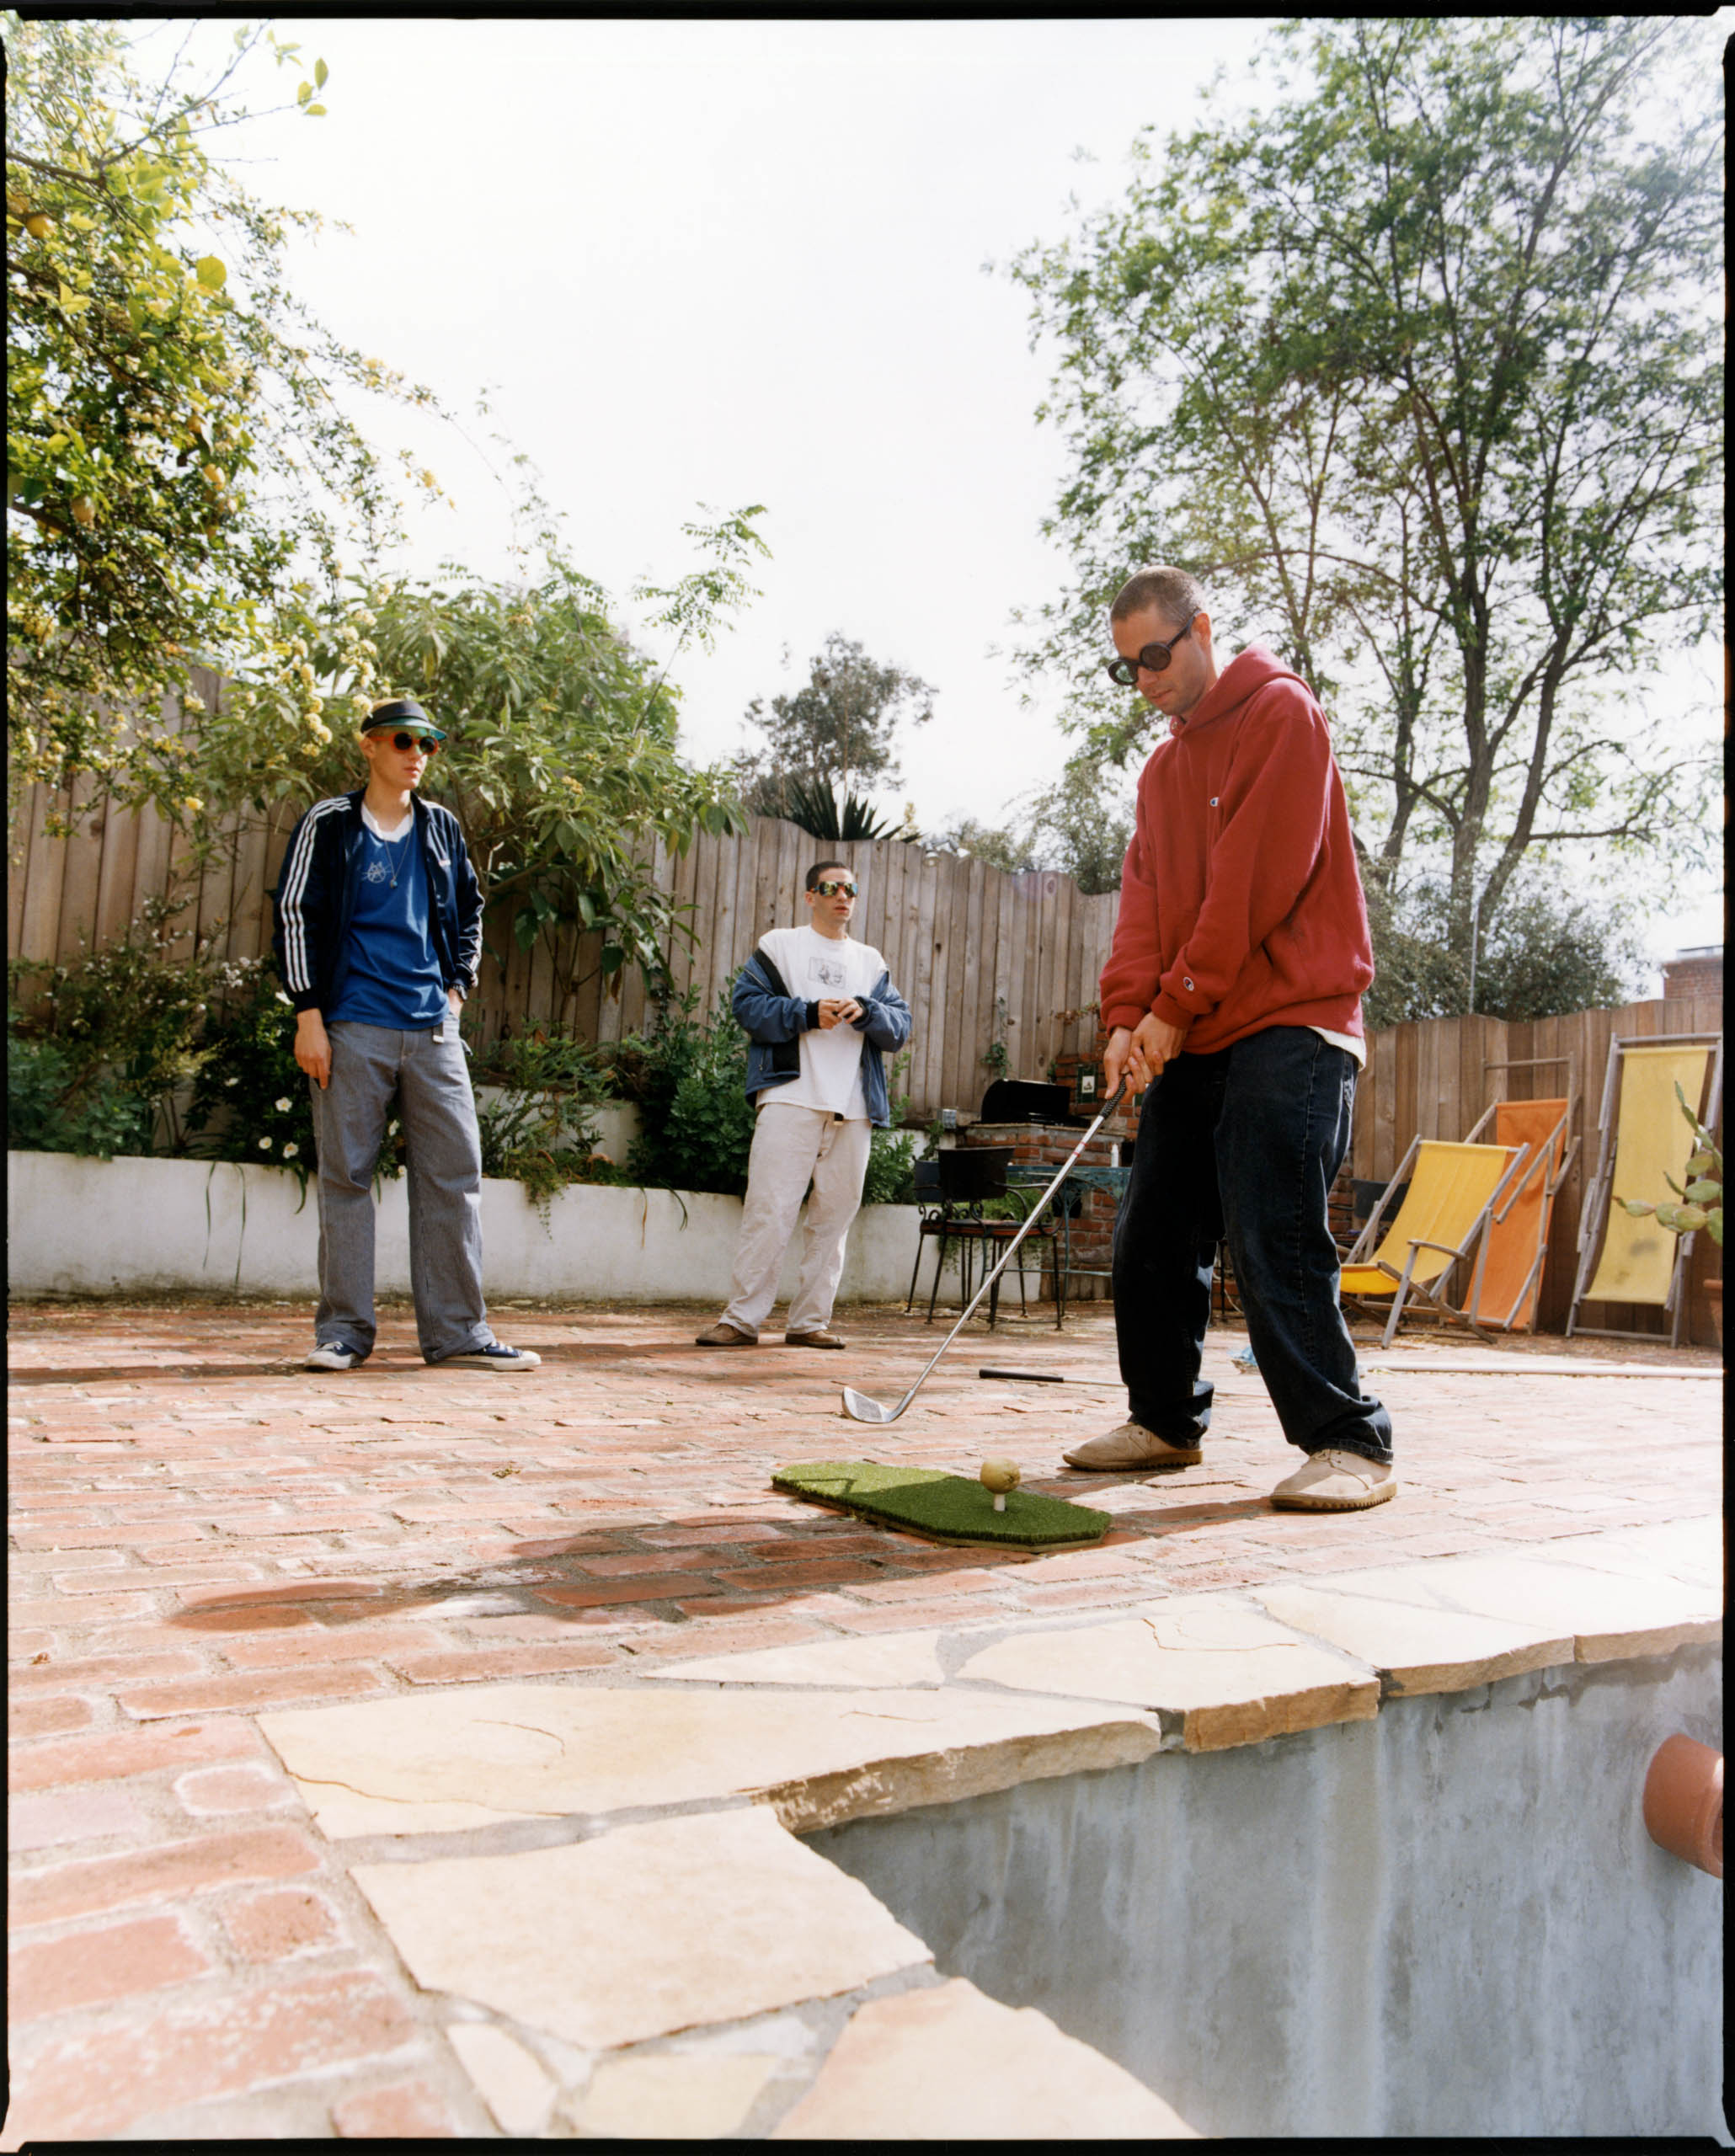 The Beastie Boys Are Not Golfers Photo by Jake Chessum